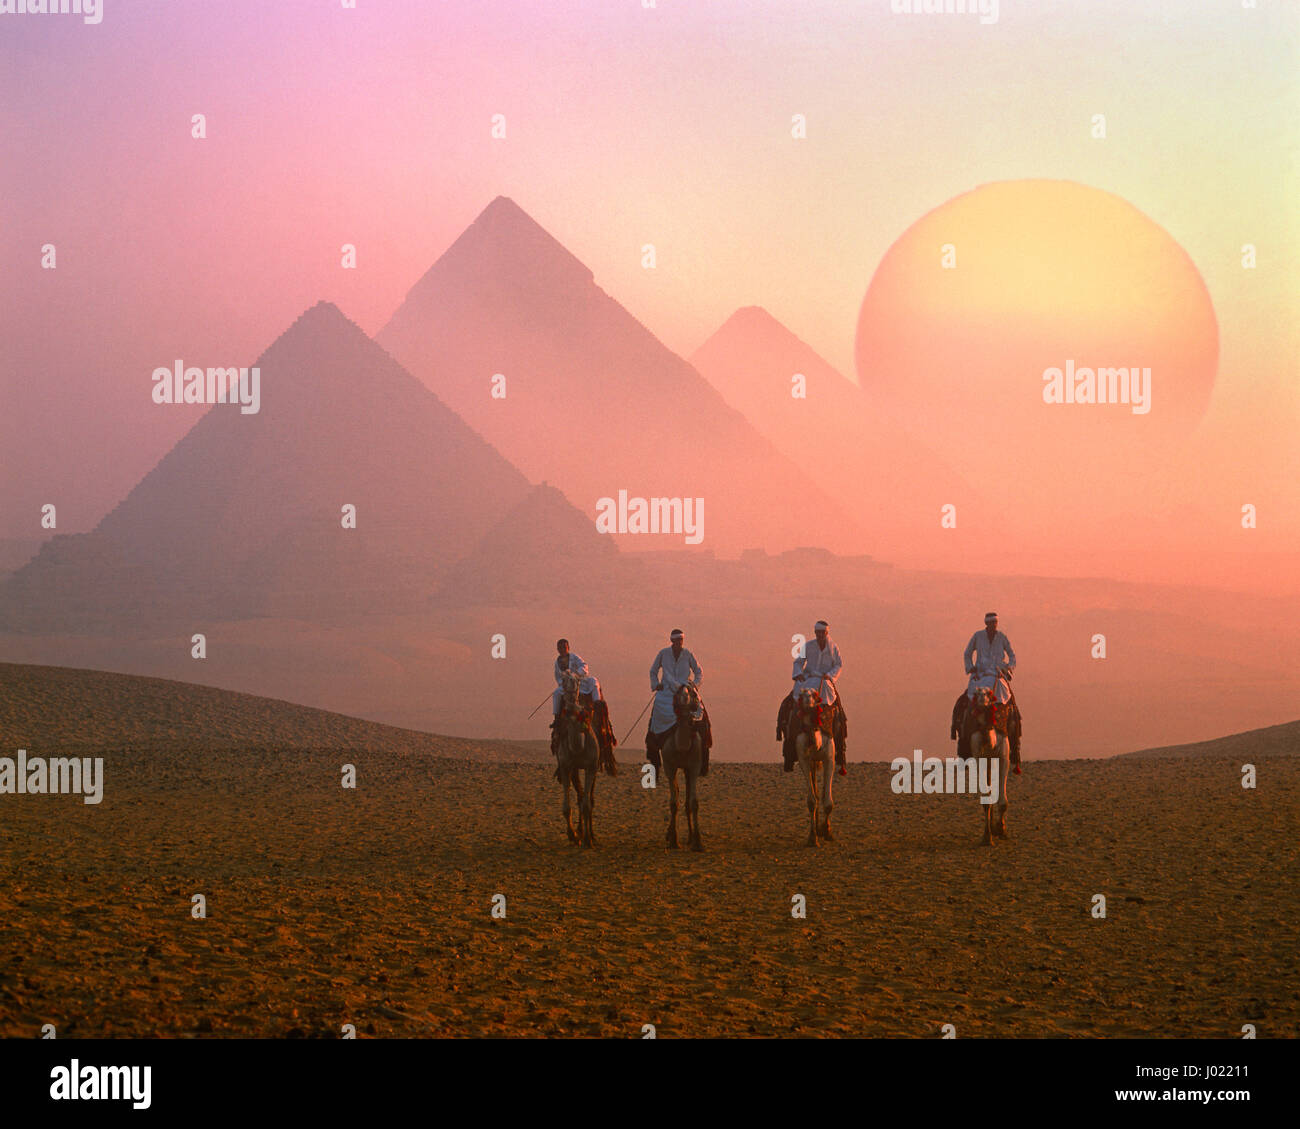 Four camel riders, the Pyramids and the rising sun, Giza, Cairo, Egypt - Stock Image